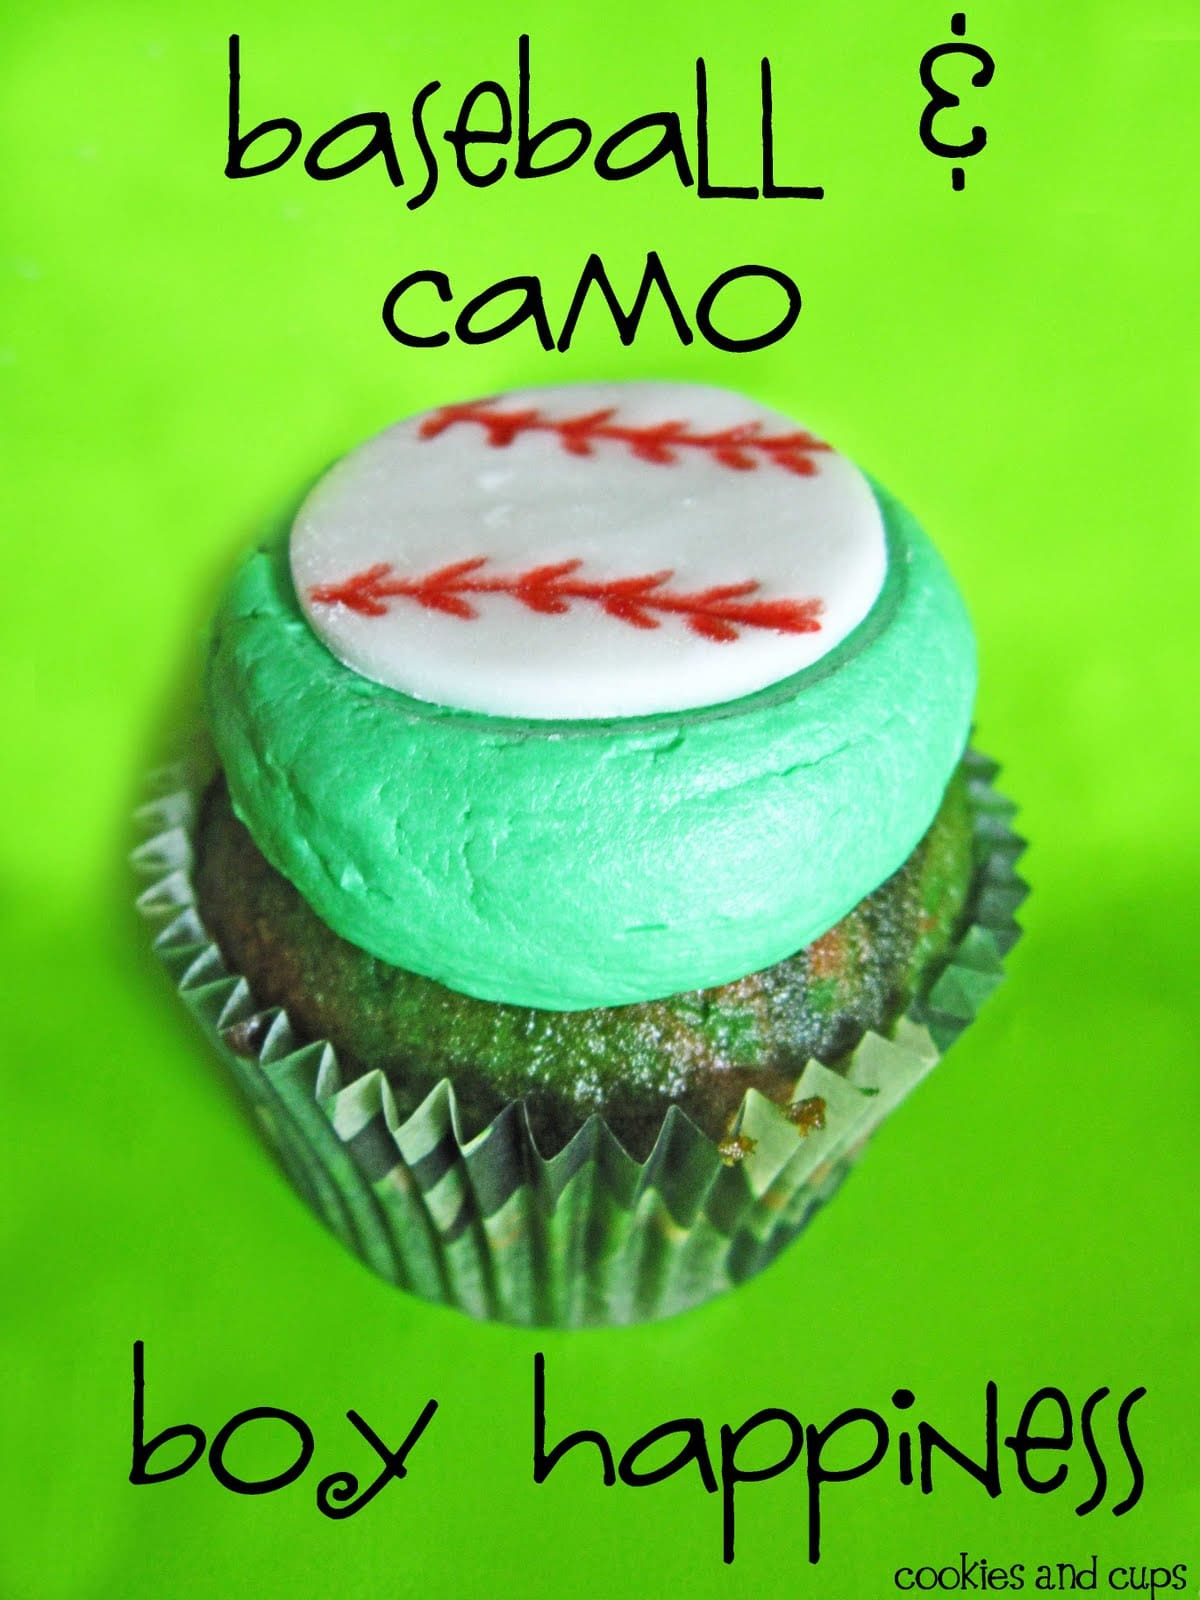 """A Green Camo Cupcake with green frosting and a fondant baseball with """"baseball & camo boy happiness"""" caption"""